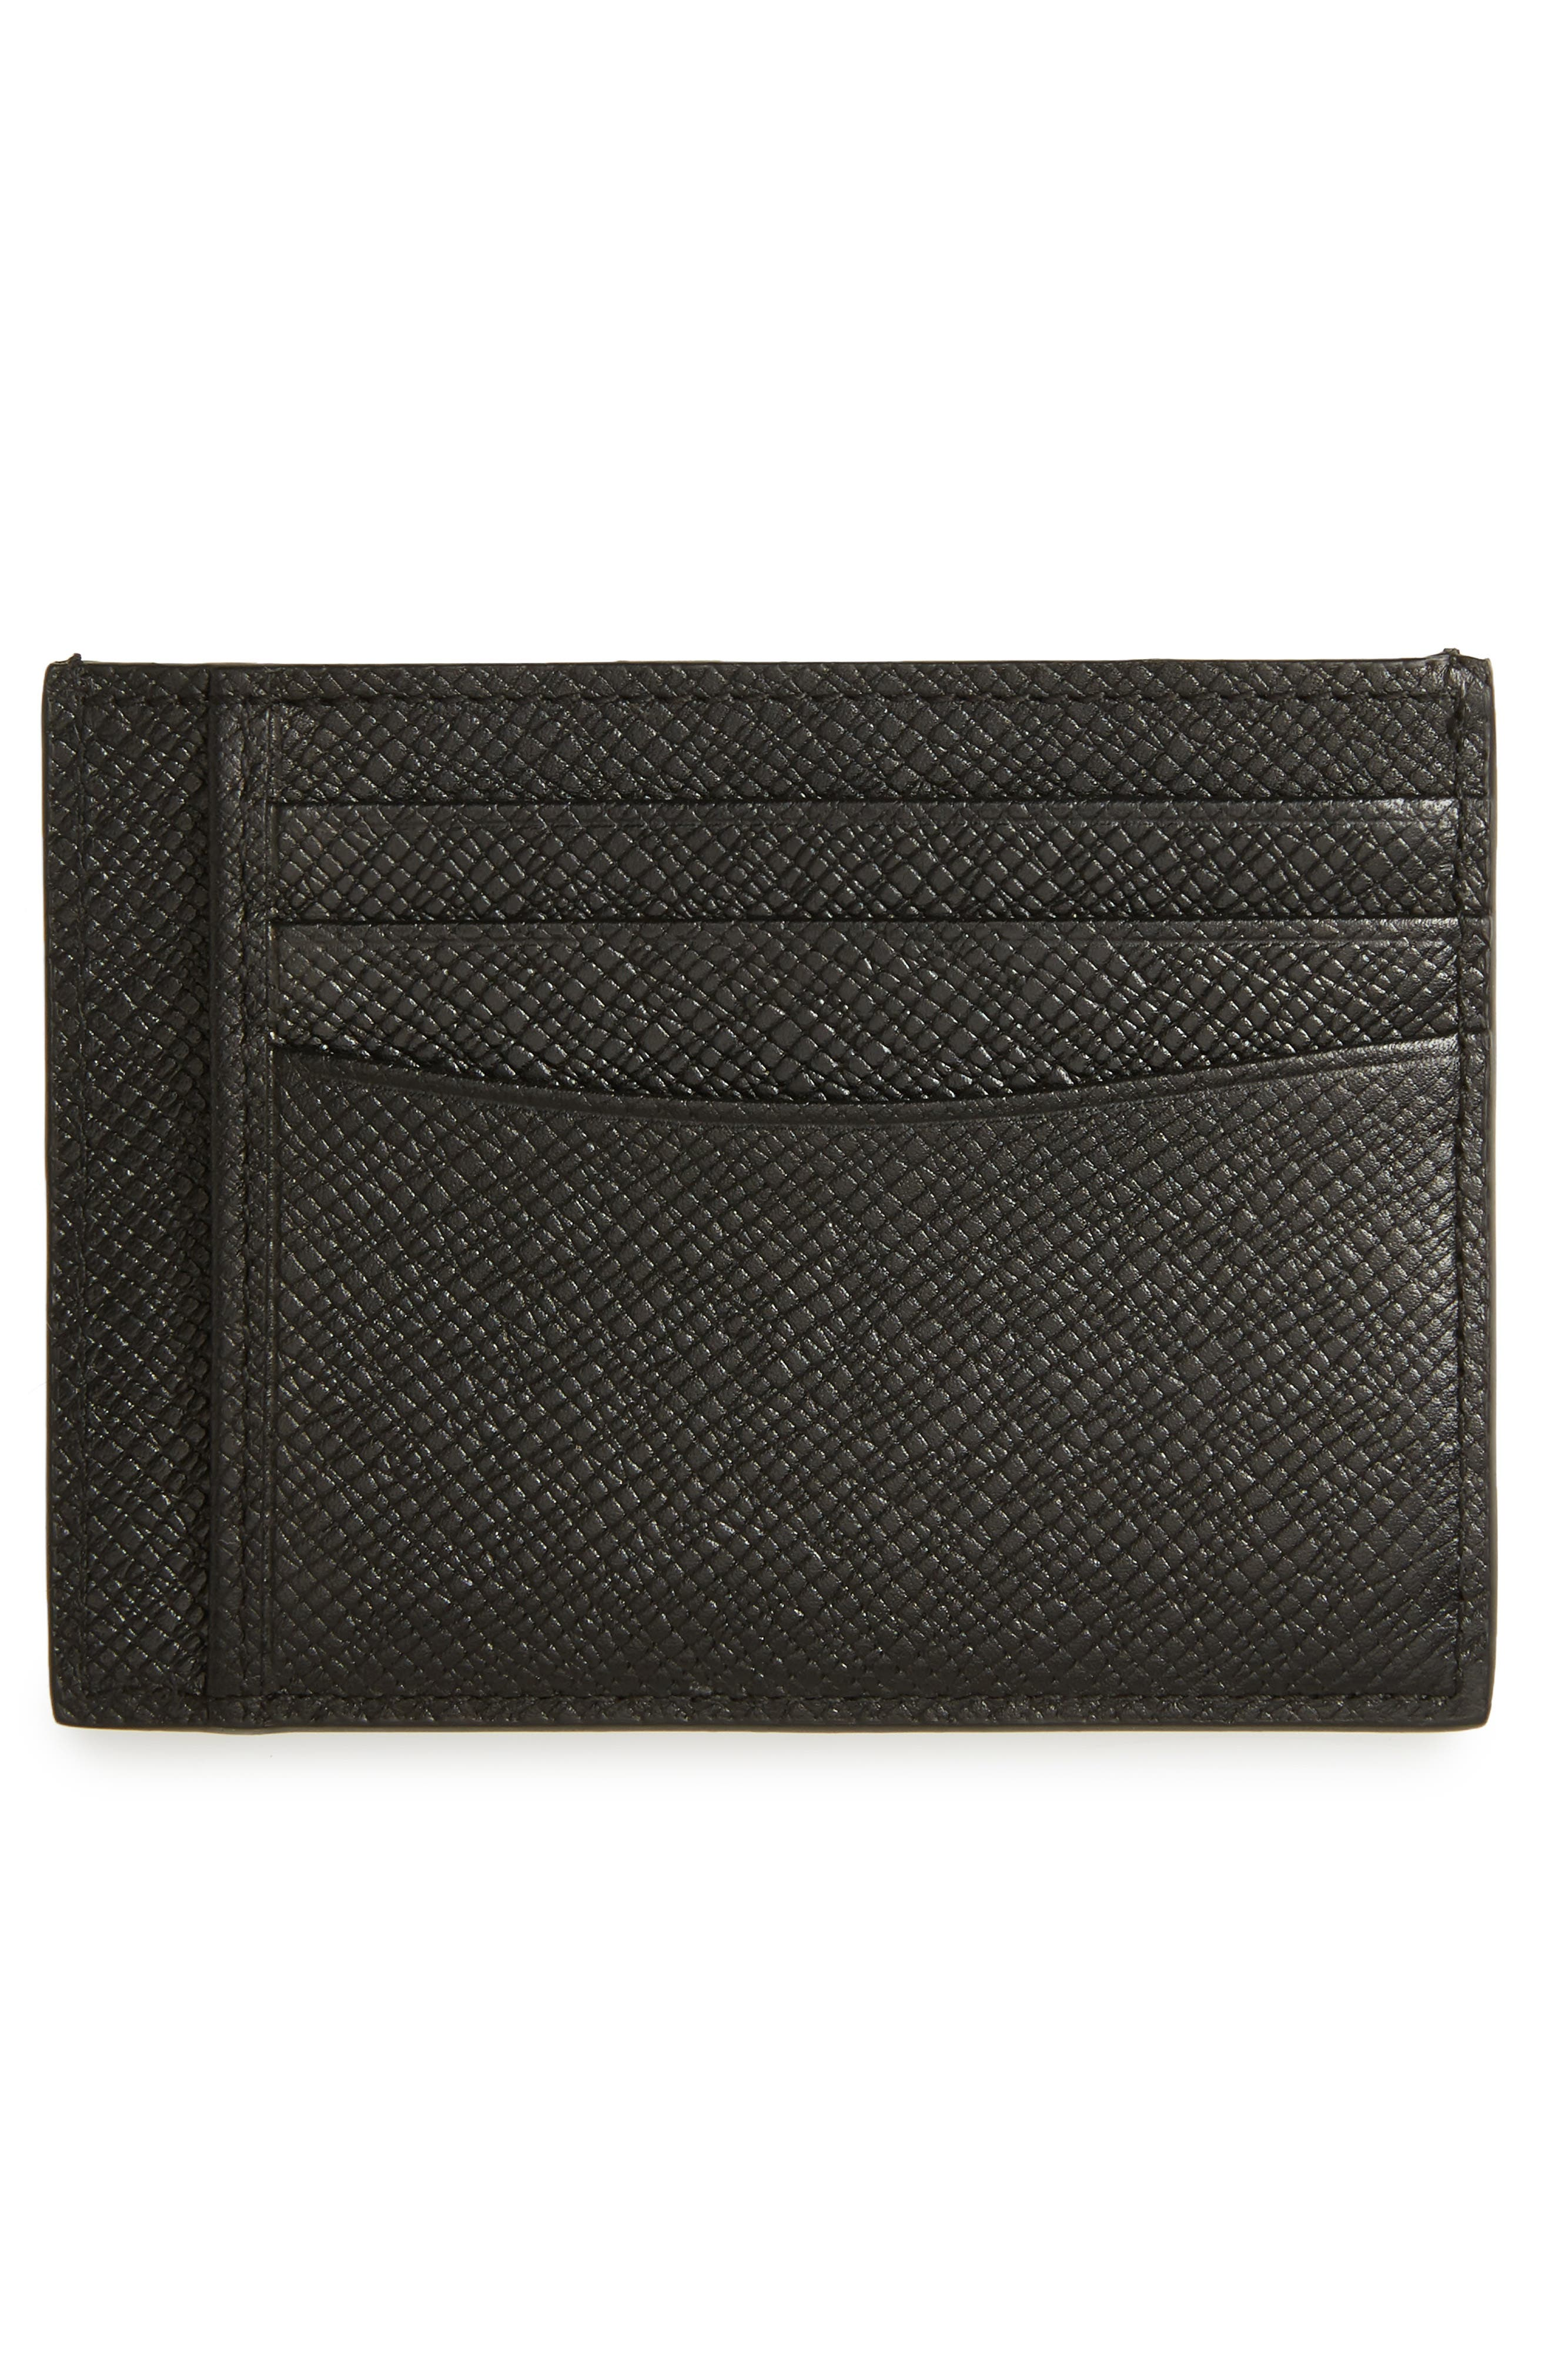 Signature Leather Card Case,                             Alternate thumbnail 2, color,                             Black Watch